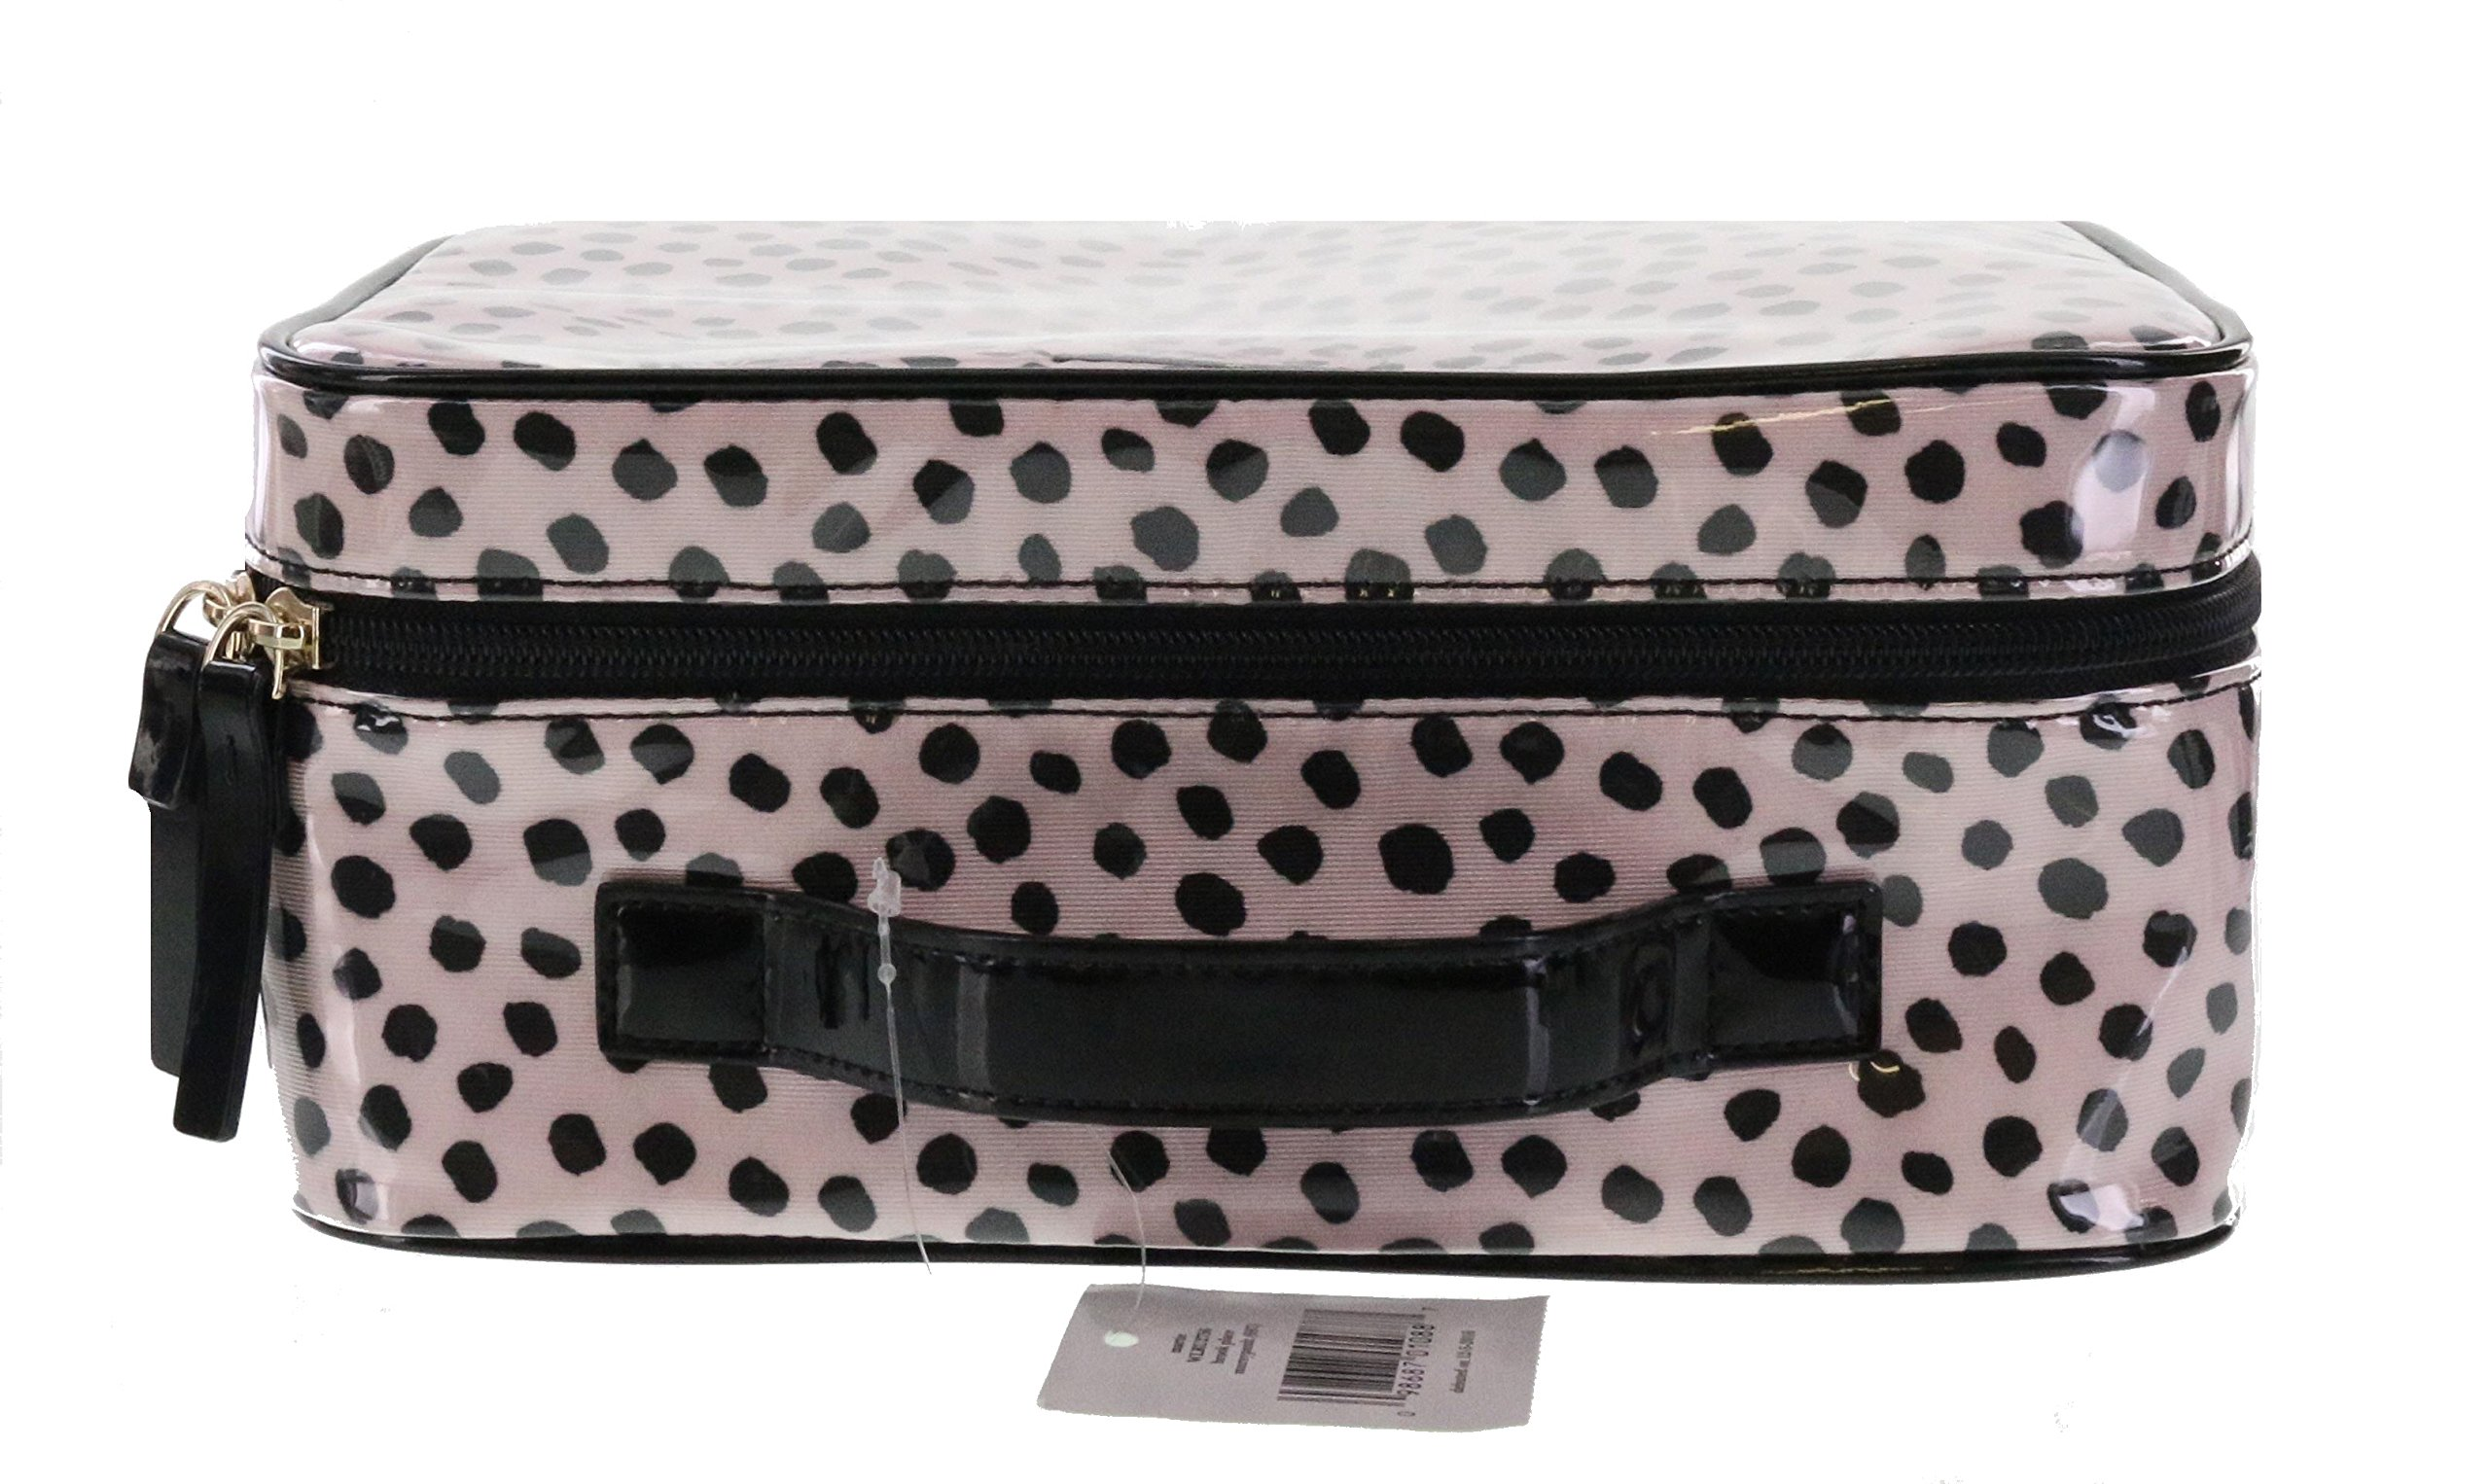 Kate Spade New York Brook Place Martie Multi-Compartment Cosmetics Travel Case (mnrsypntdt)